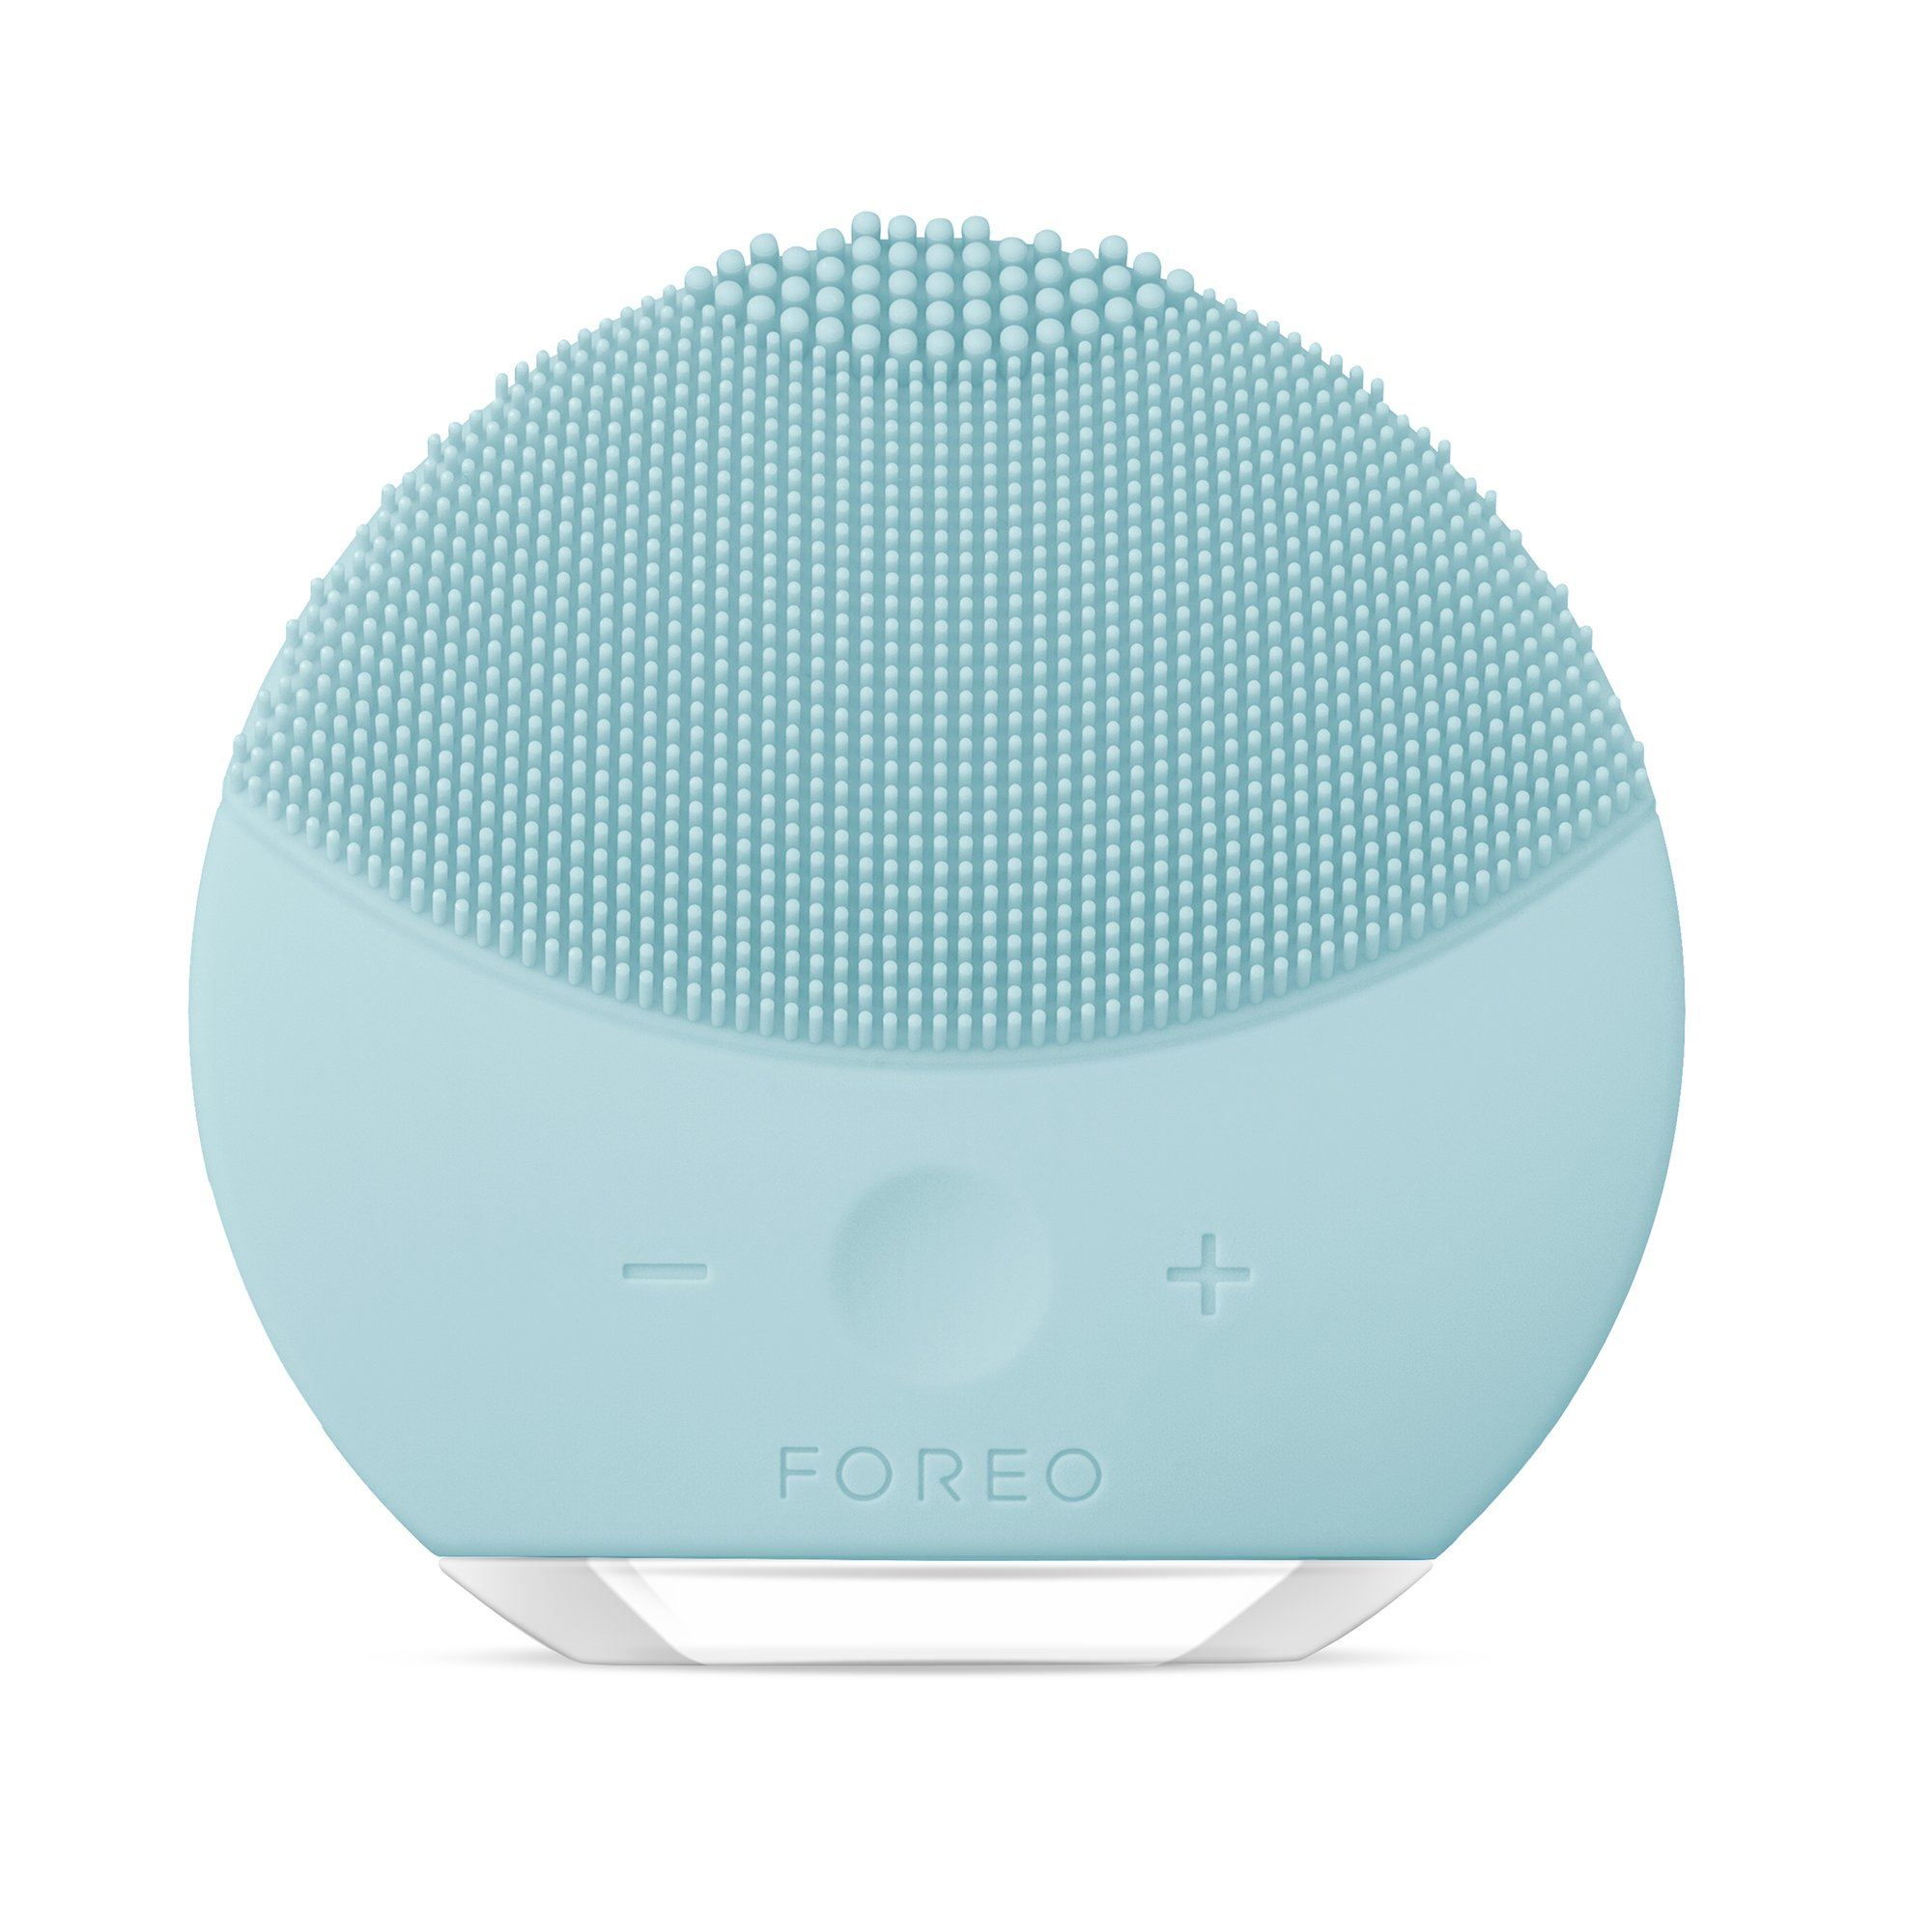 FOREO LUNA mini 2 Facial Cleansing Brush, Gentle Exfoliation and Sonic Cleansing for All Skin Types Mint by FOREO